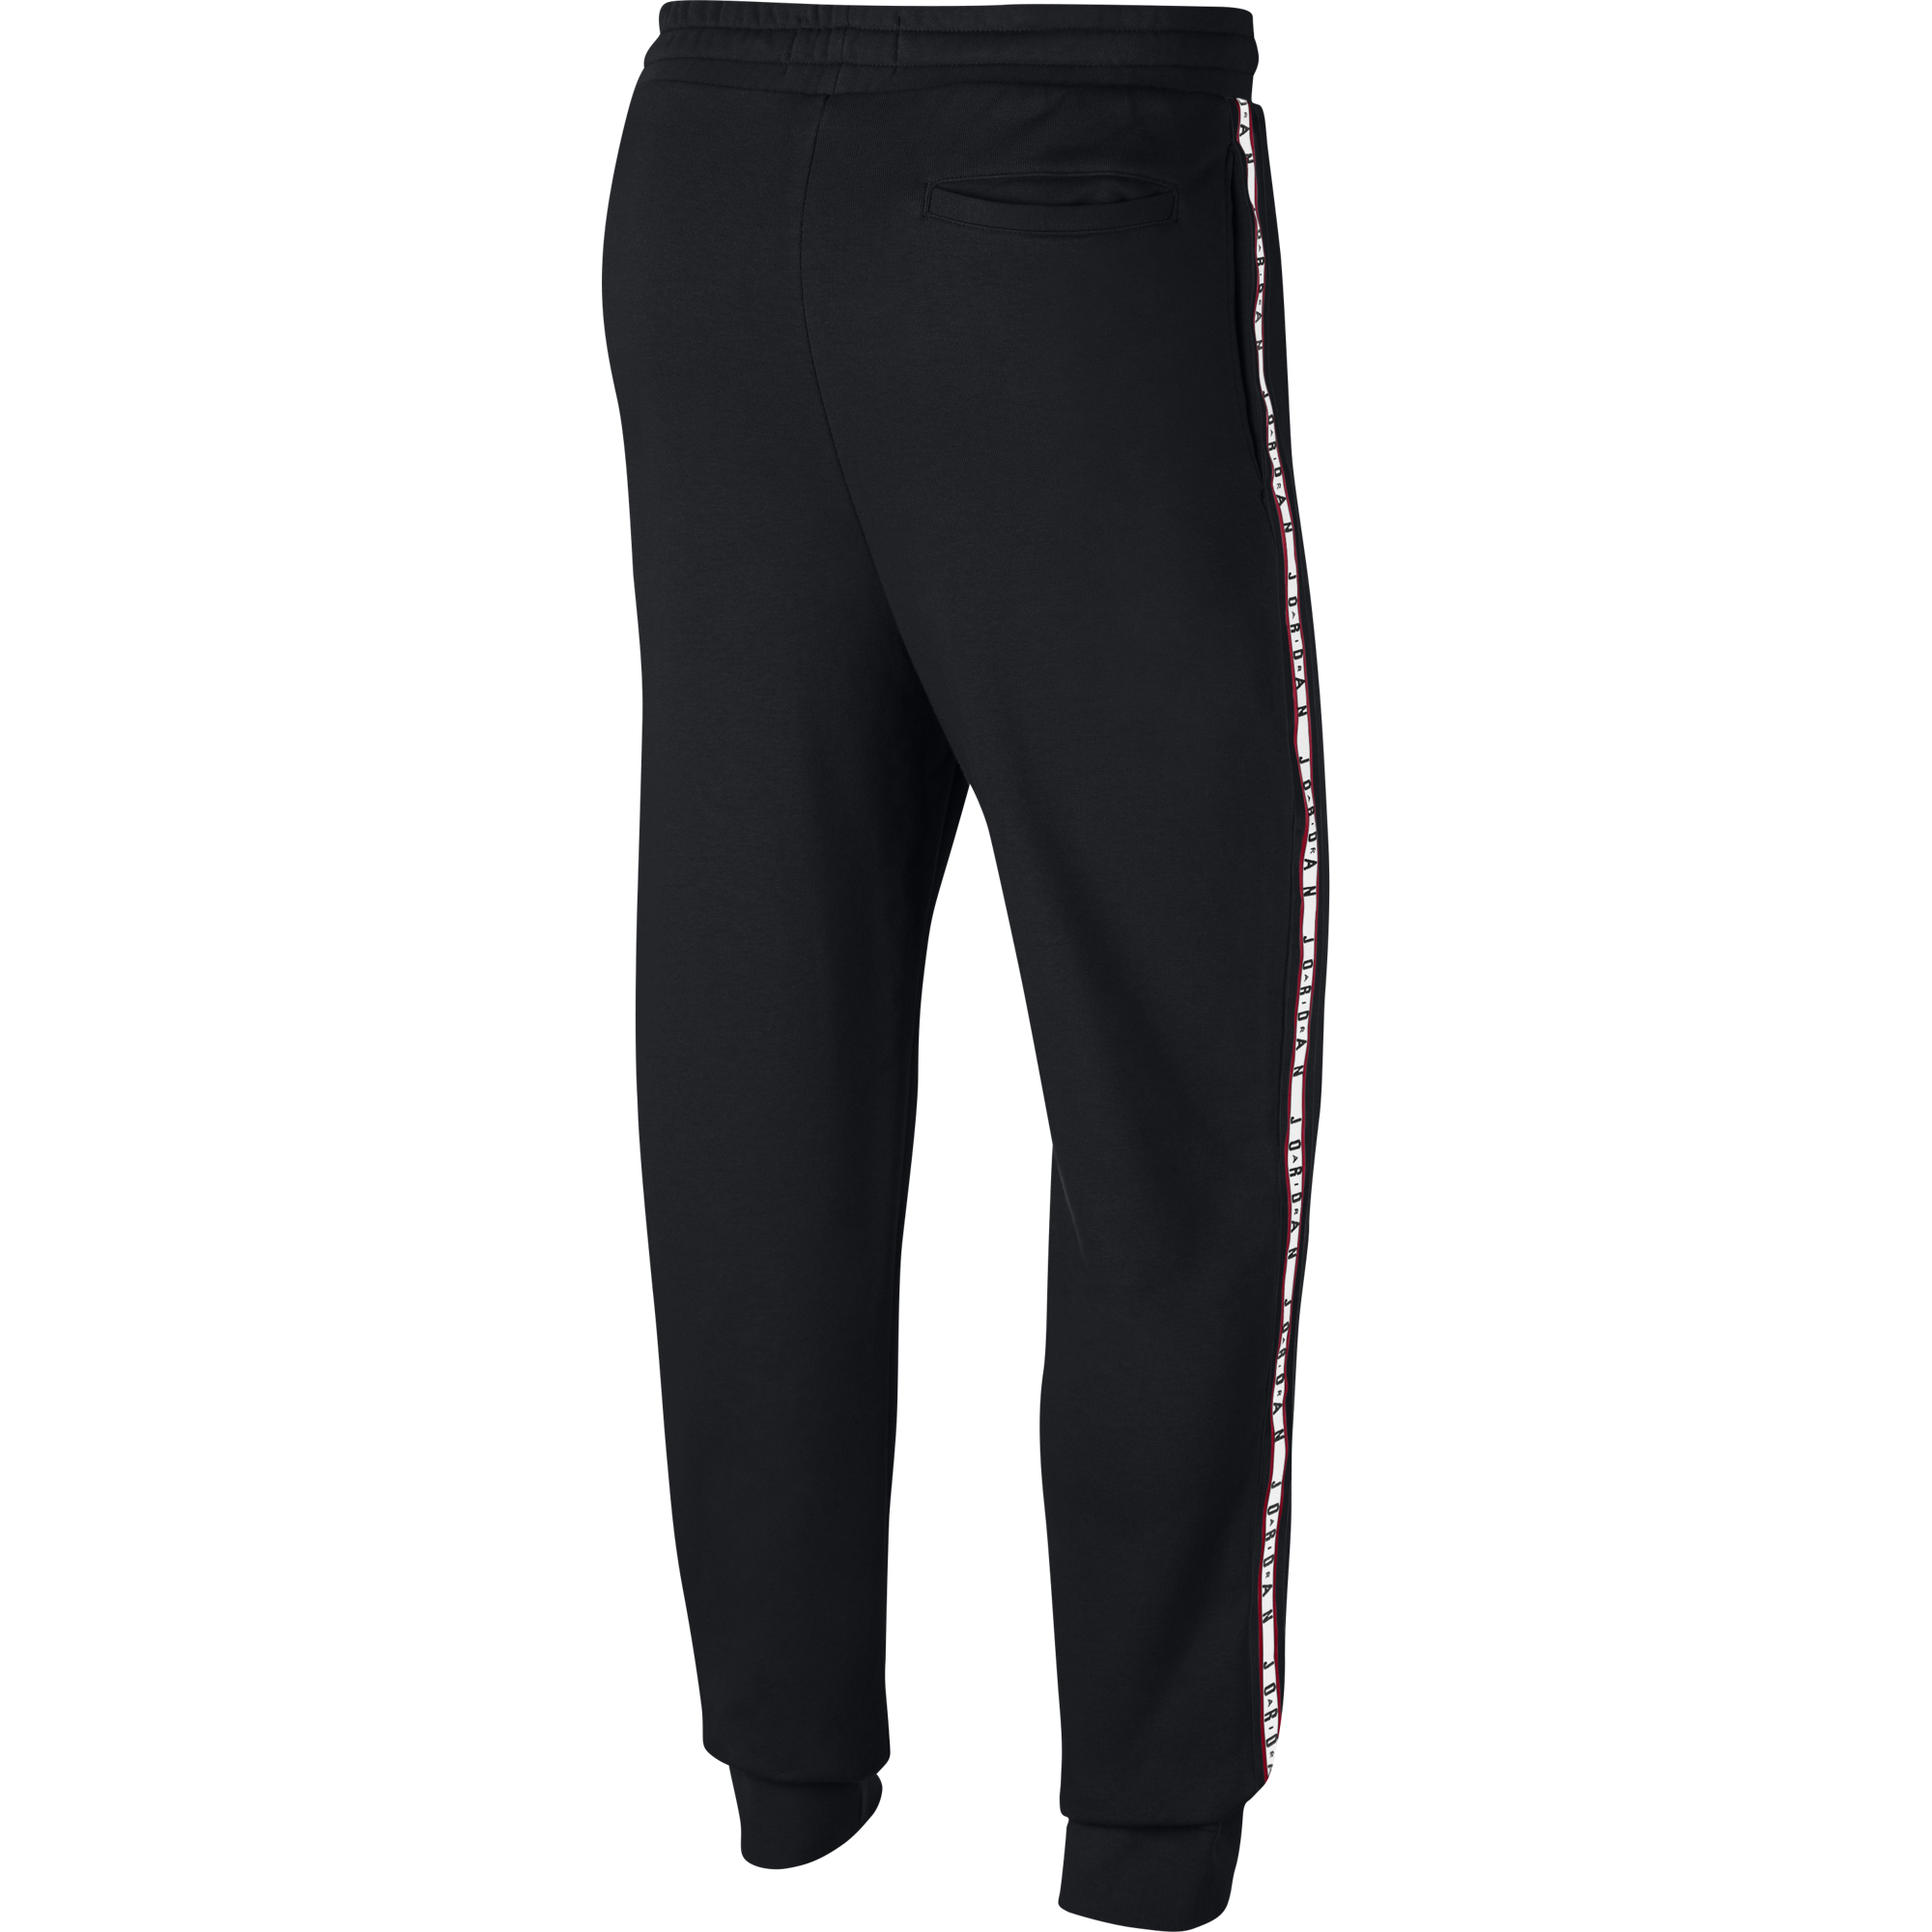 fd2d0edaba1 AIR JORDAN JUMPMAN HBR PANTS for £70.00 | kicksmaniac.com ...